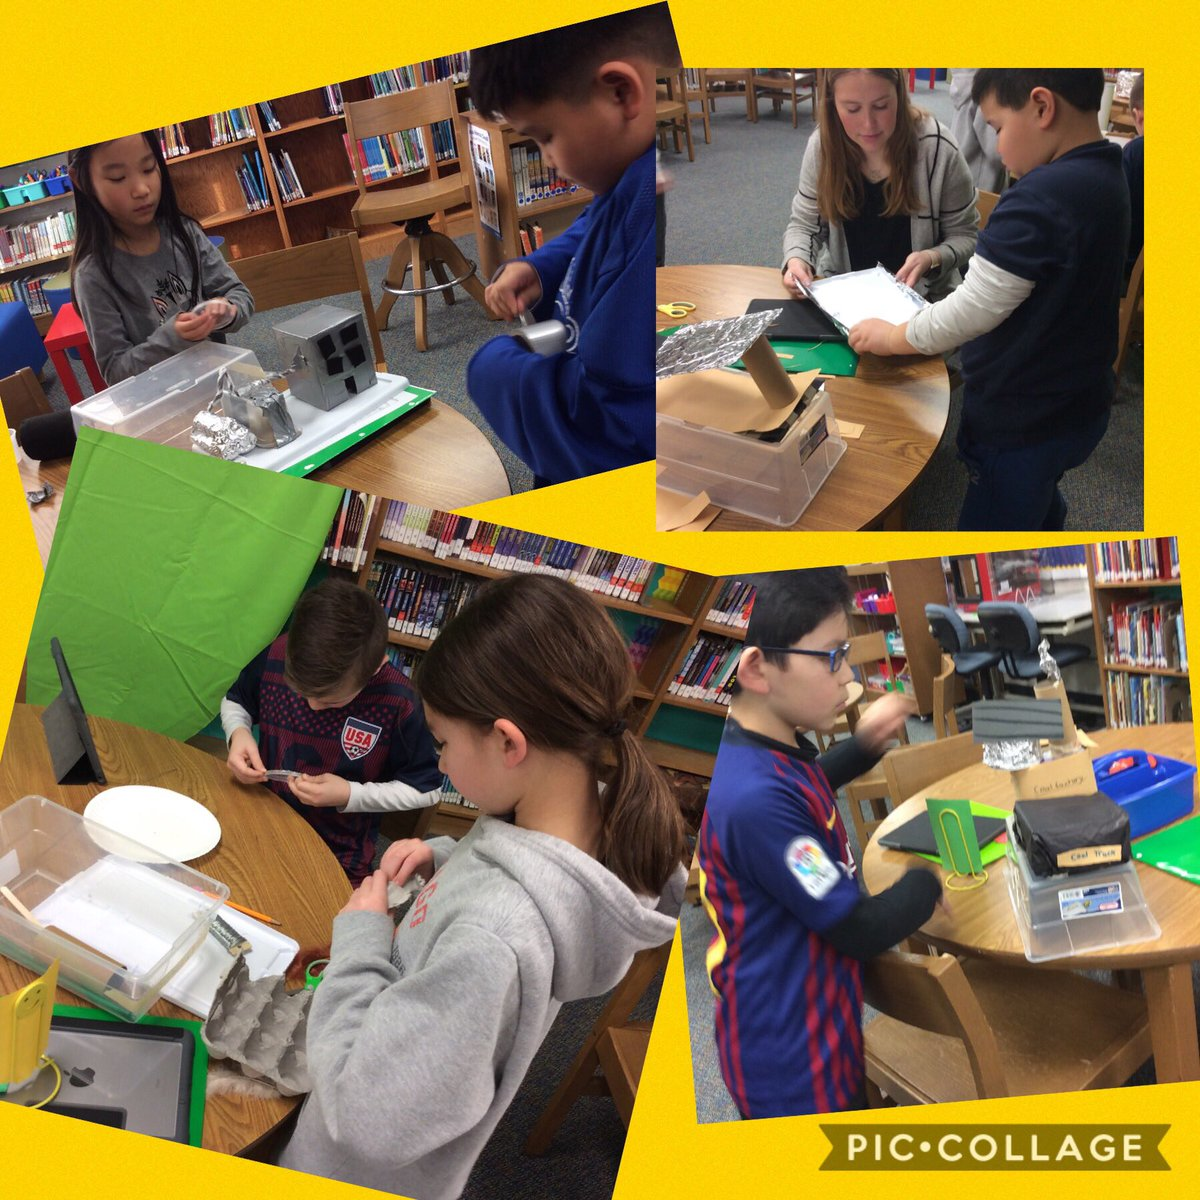 test Twitter Media - Students working to improve their science models. #GrowthMindset #d30learns https://t.co/Y0JyvO8E8m